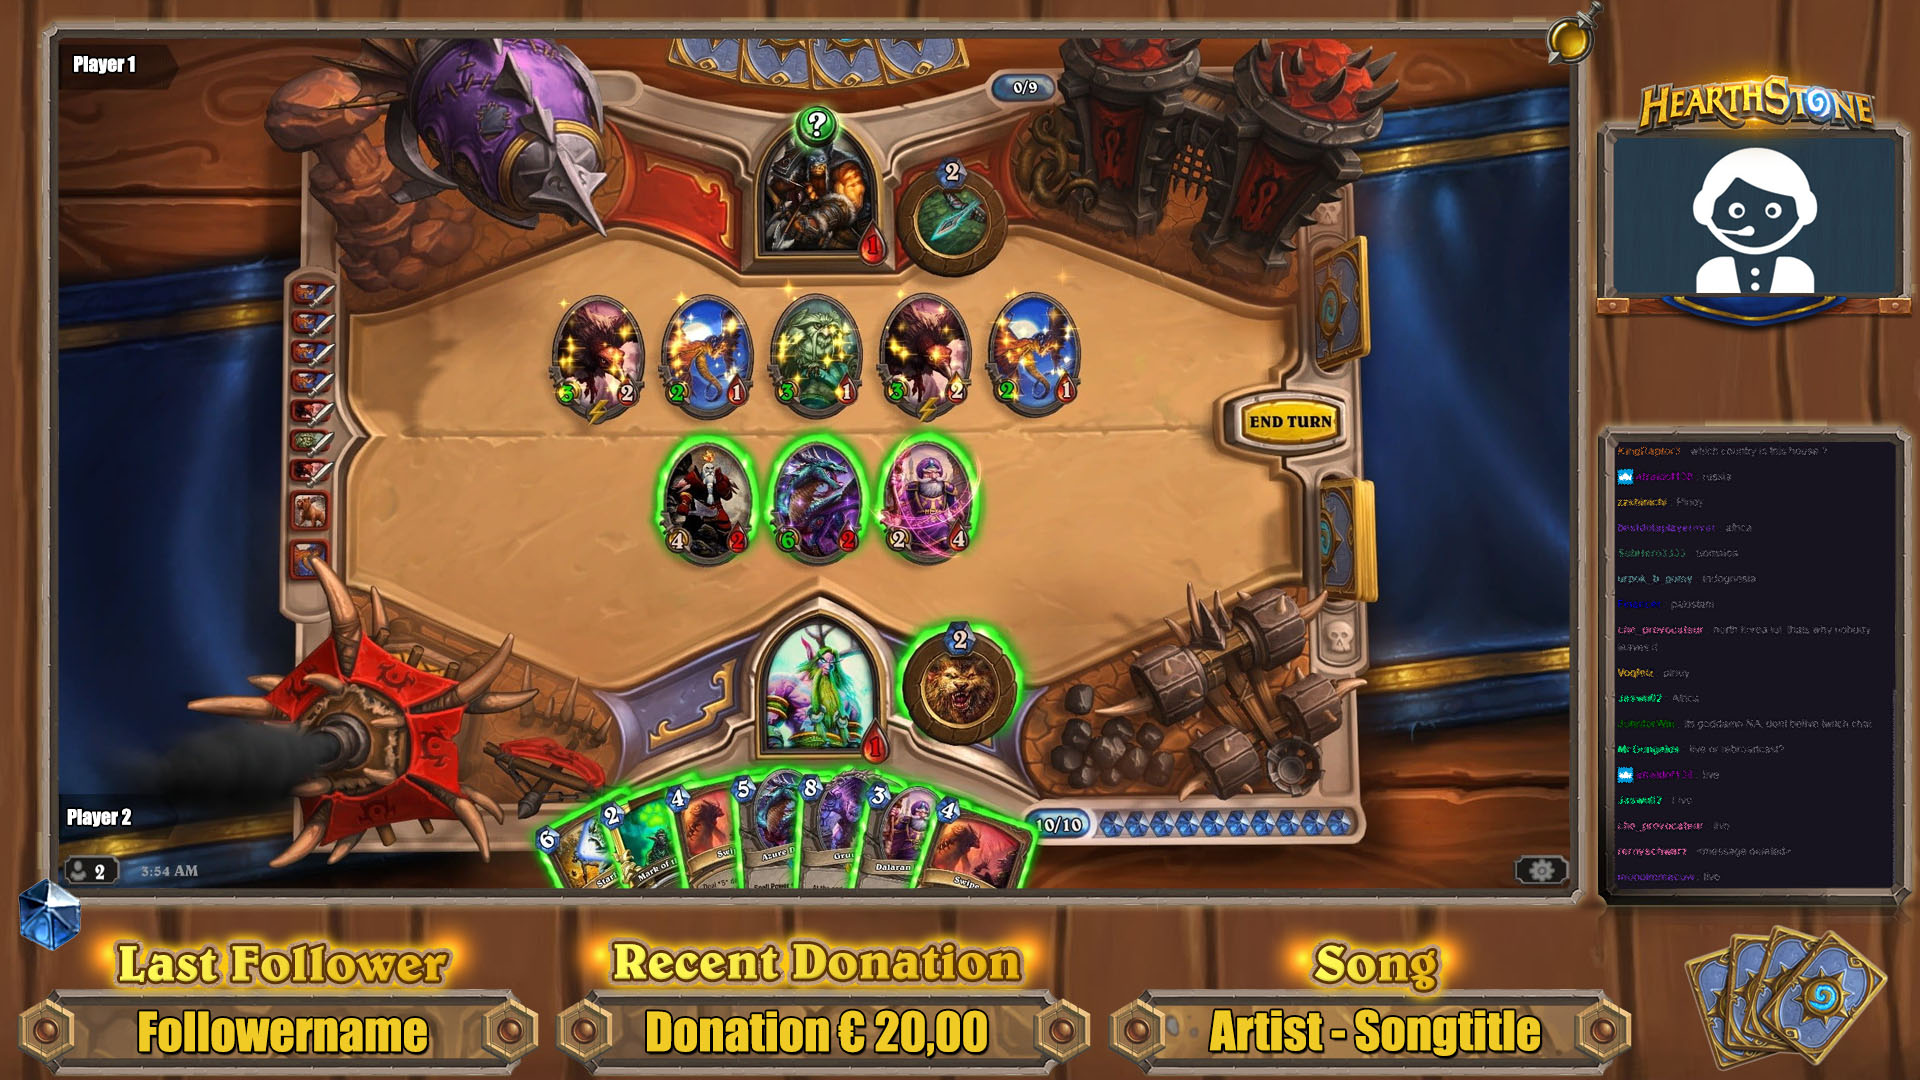 free hearthstone stream overlays hearthstone